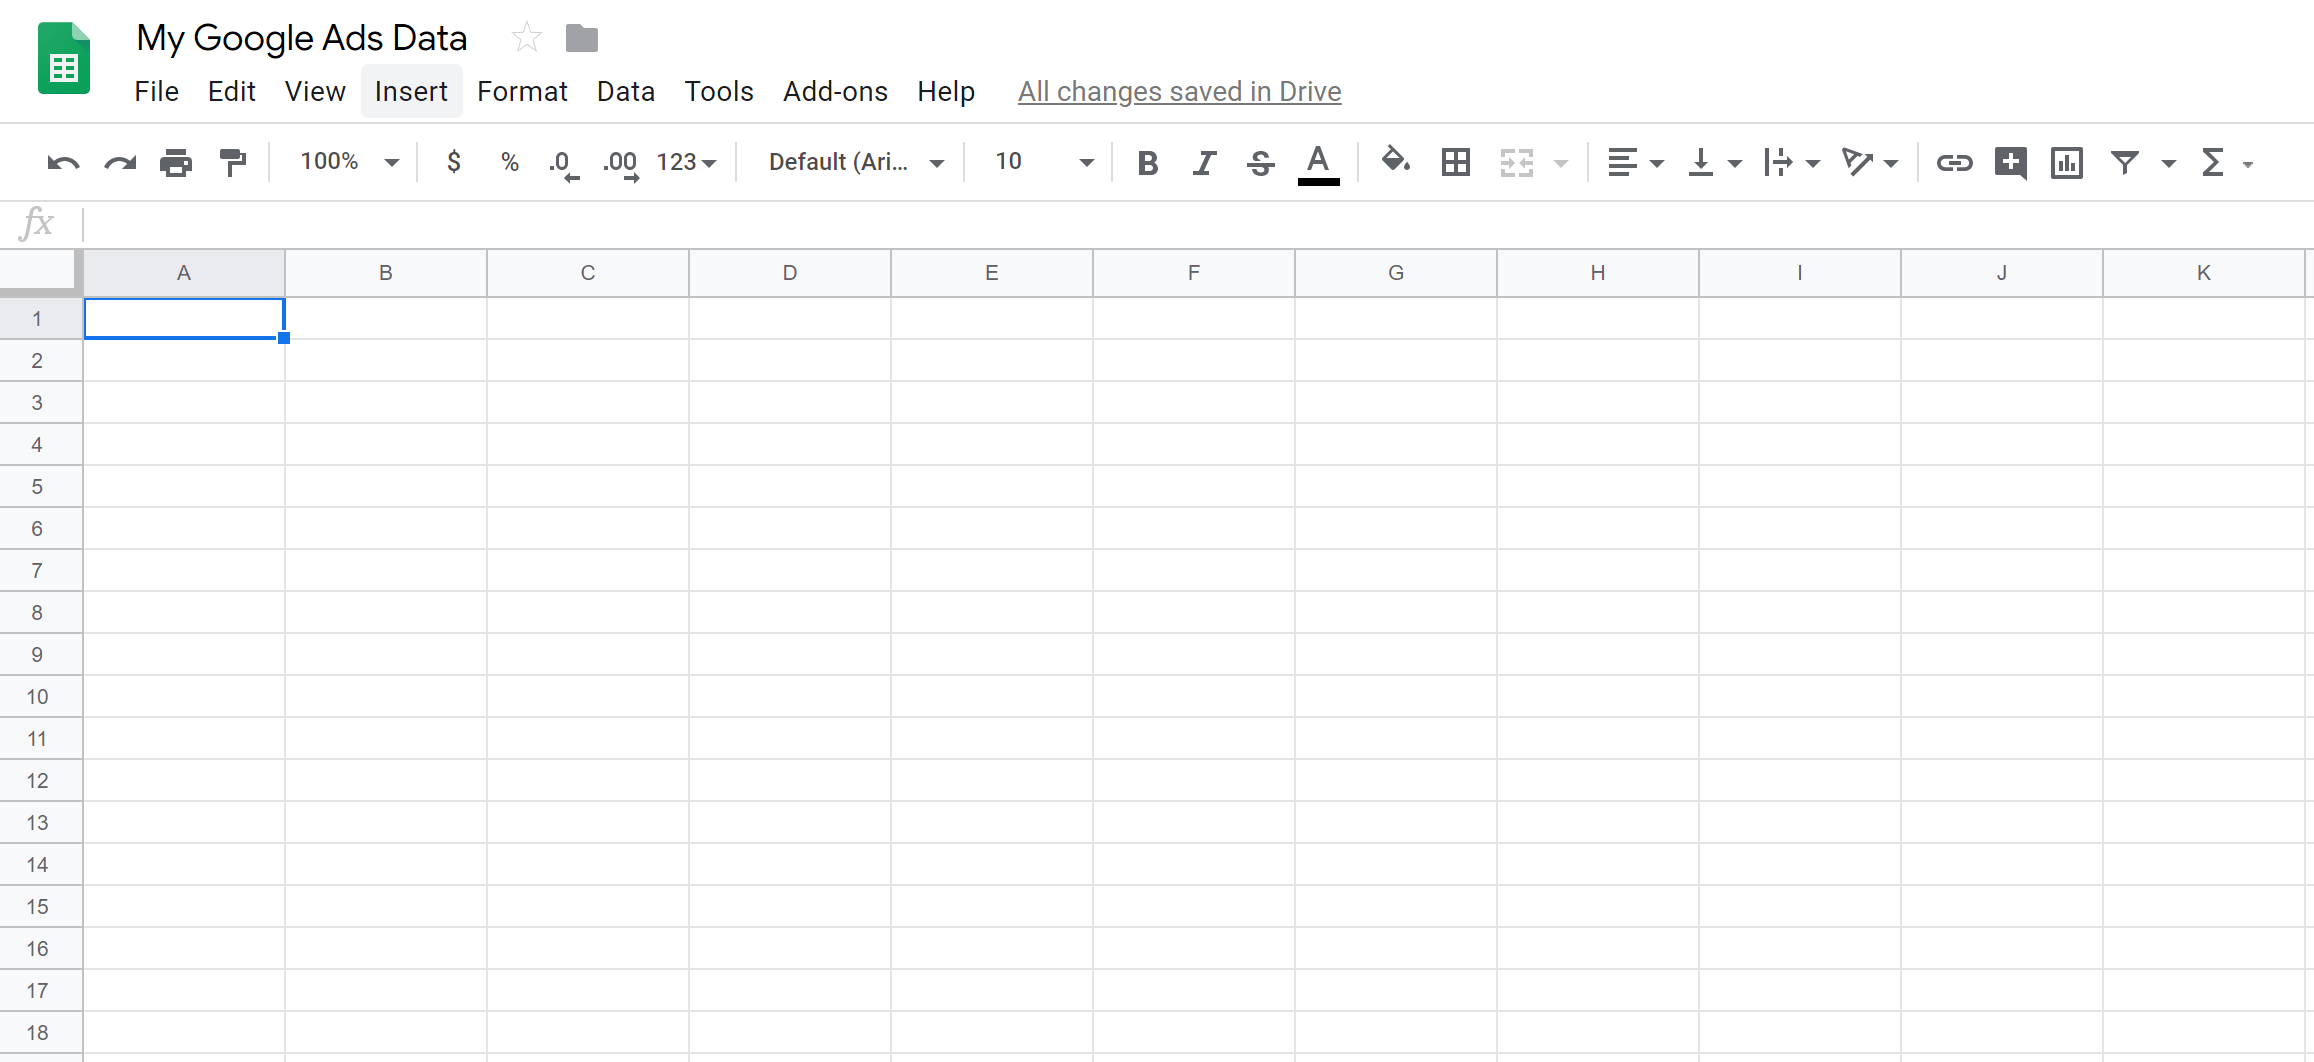 Google Sheets can be a very useful tool for working with data from your Google Ads campaigns